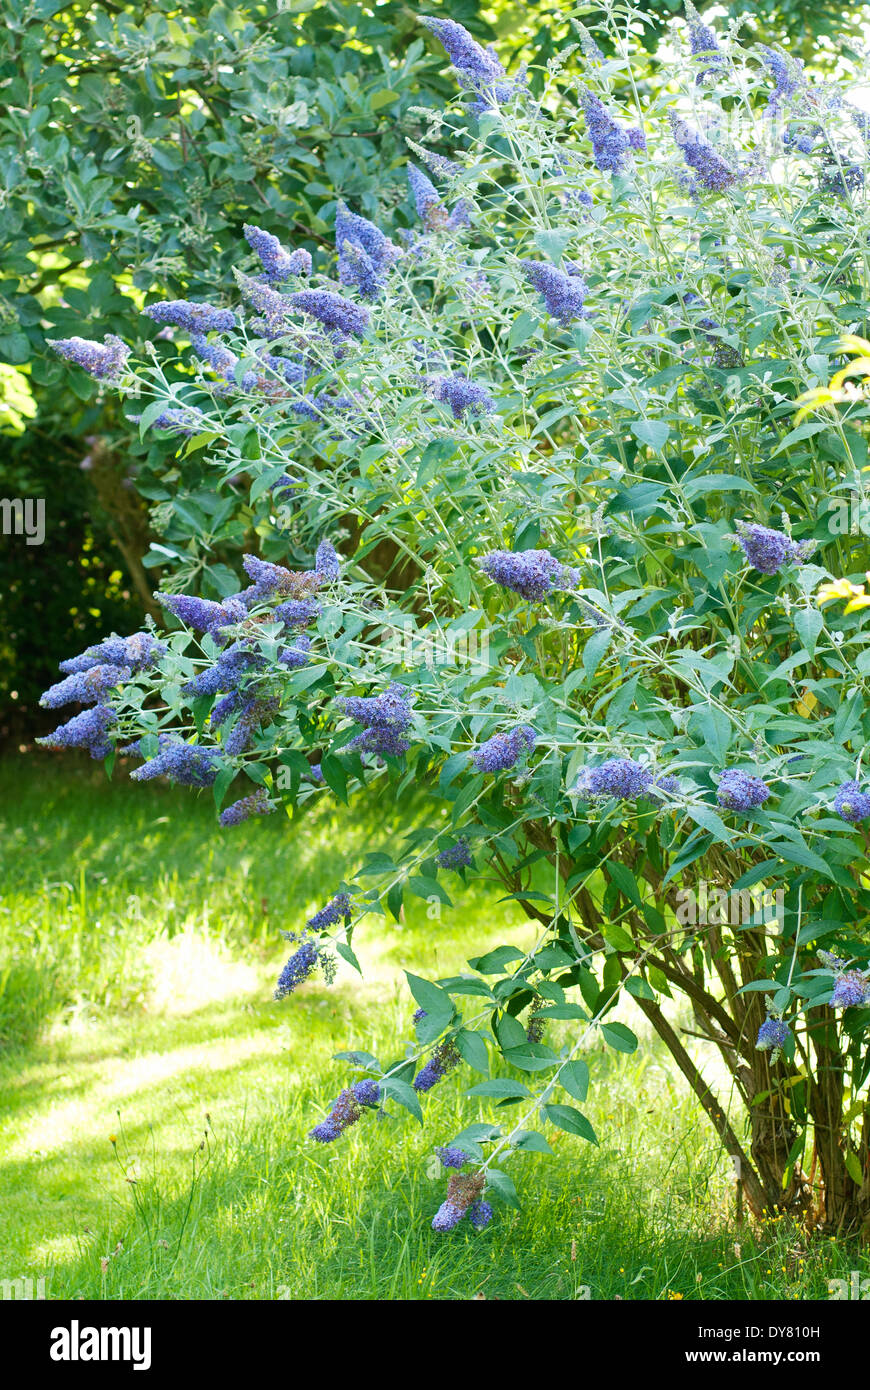 Shrubs with purple flowers at end of branch - Buddleja Lochinch Butterfly Bush Shrub July Summer Bush Covered